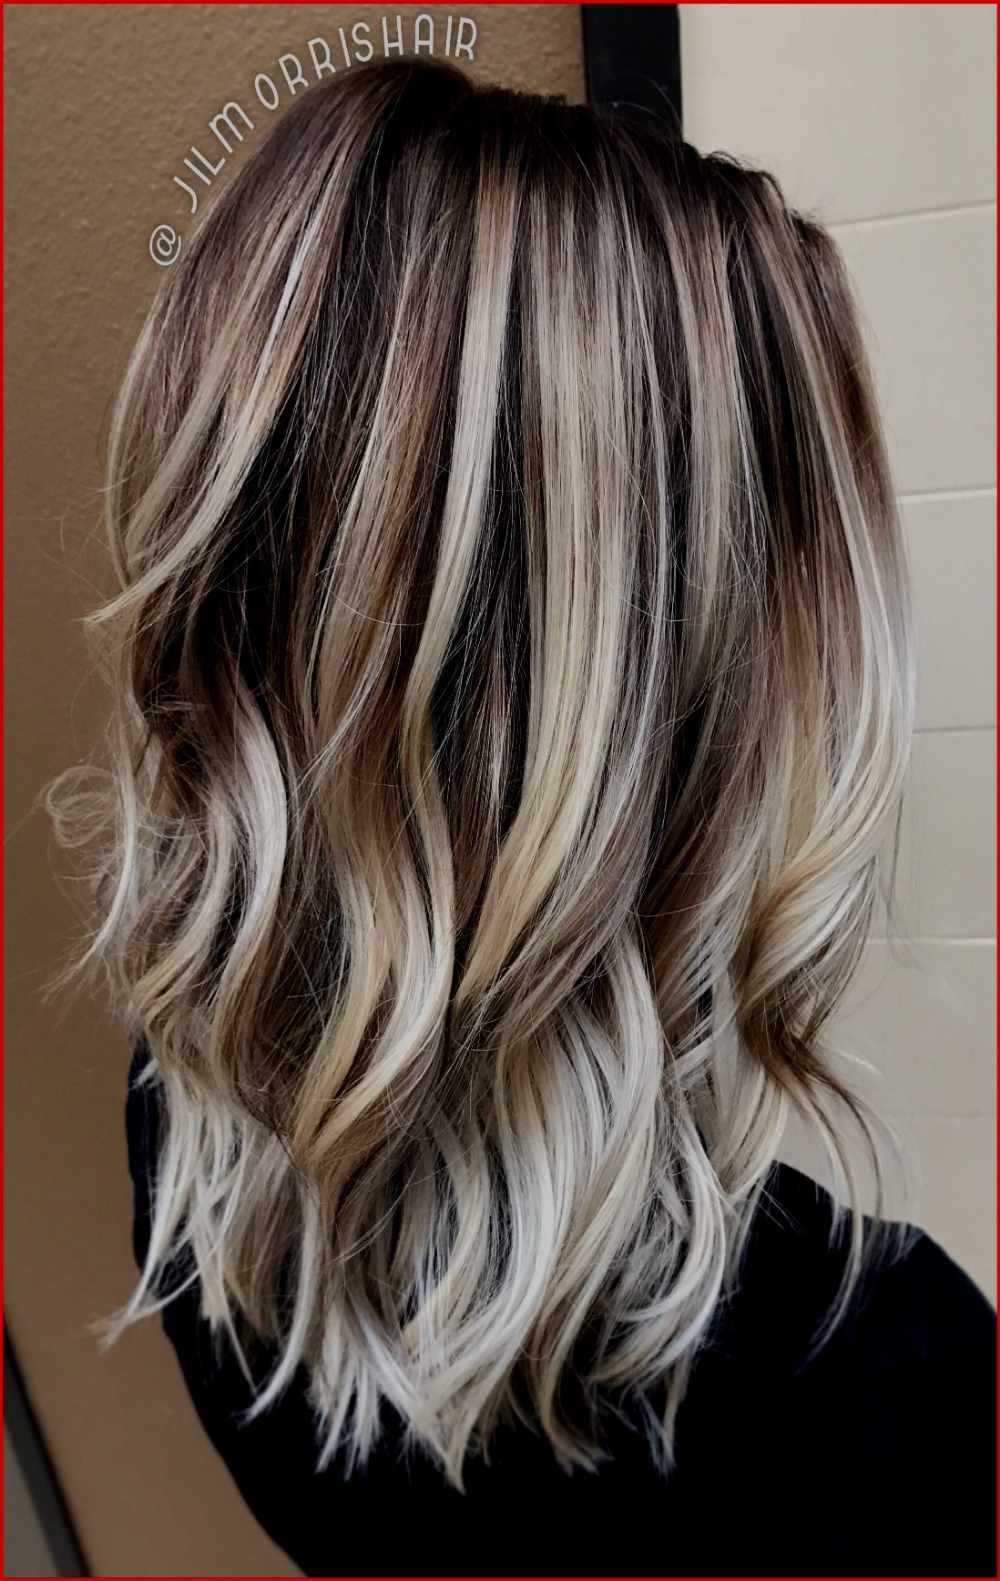 Brown Hair With Light Ash Blonde Highlights Google Search Blonde Hair With Highlights Highlights Brown Hair Short Brown Blonde Hair